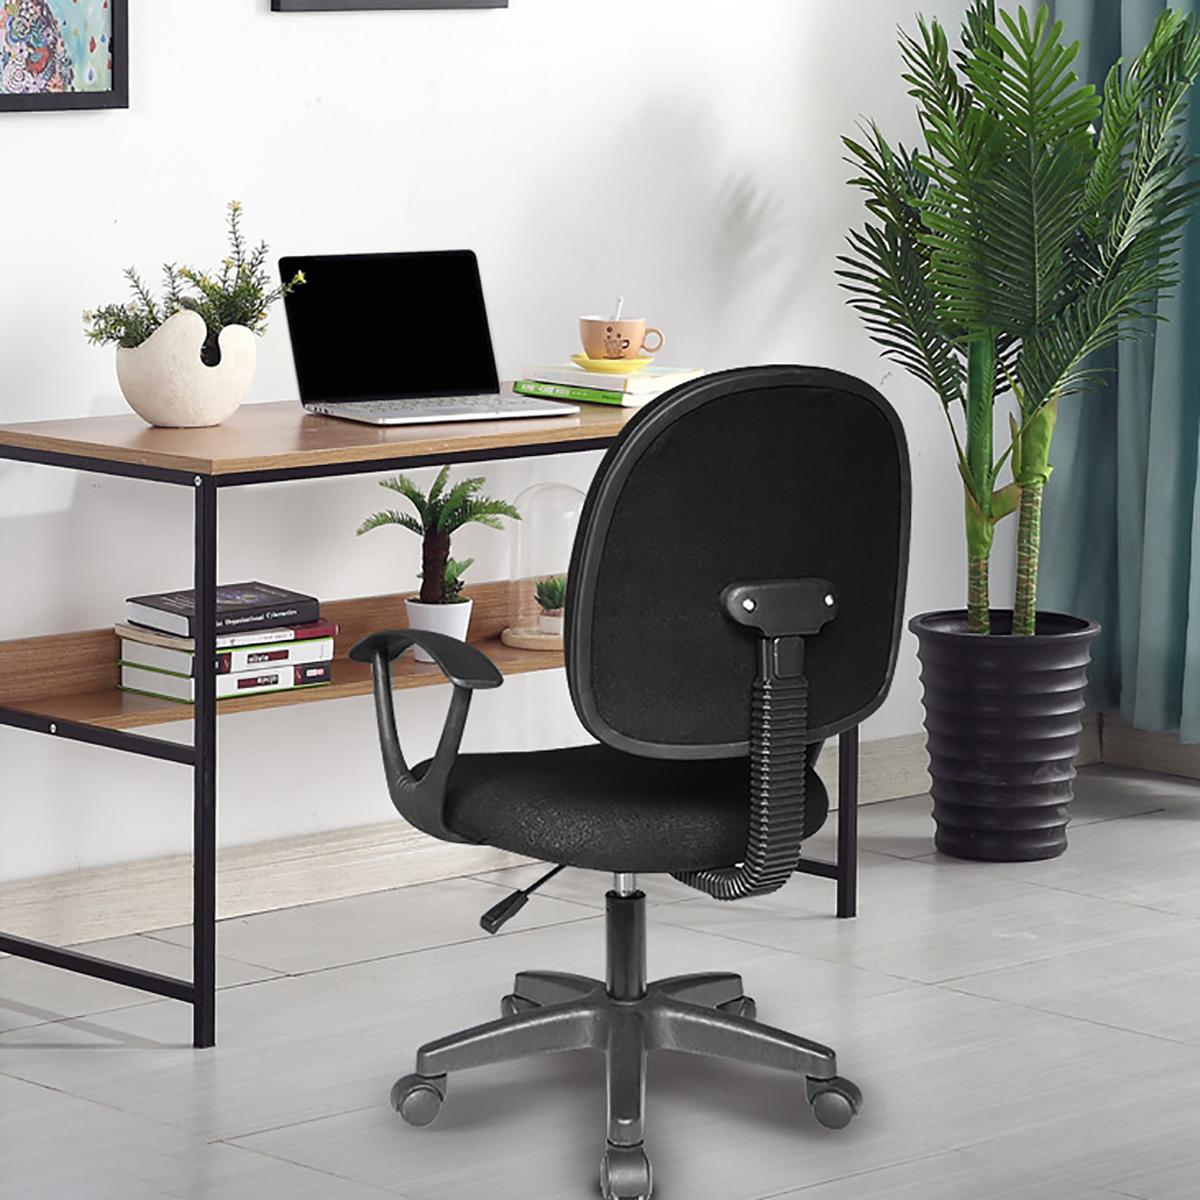 To Global With Armrestsoffice Chairs Compact Office Chair Home Study Work Chair Buy Online At Best Prices In Pakistan Daraz Pk